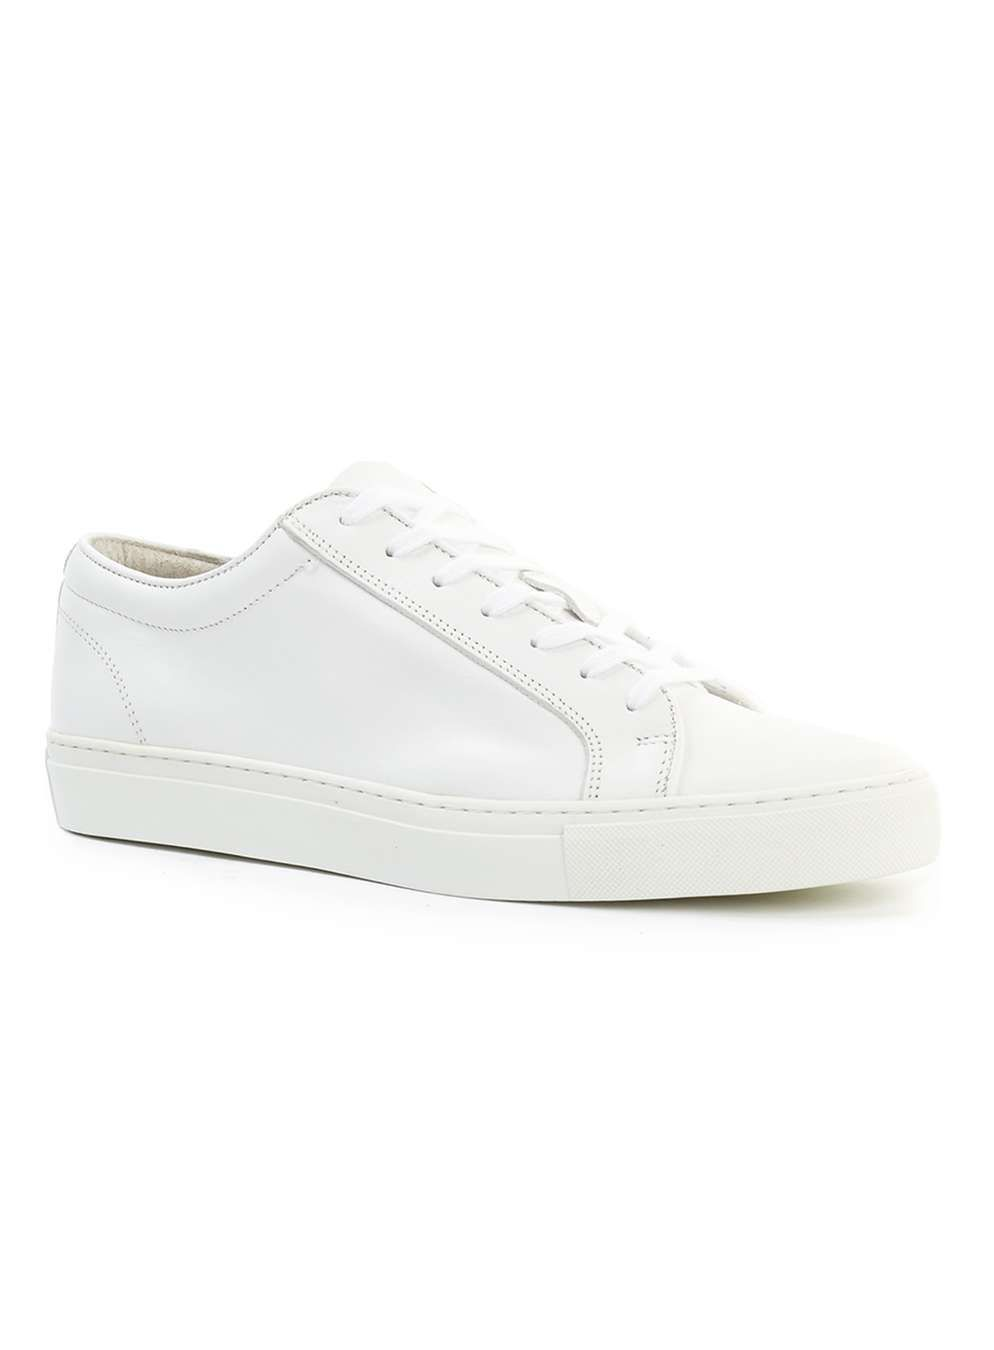 White Leather Trainers - Men's Casual